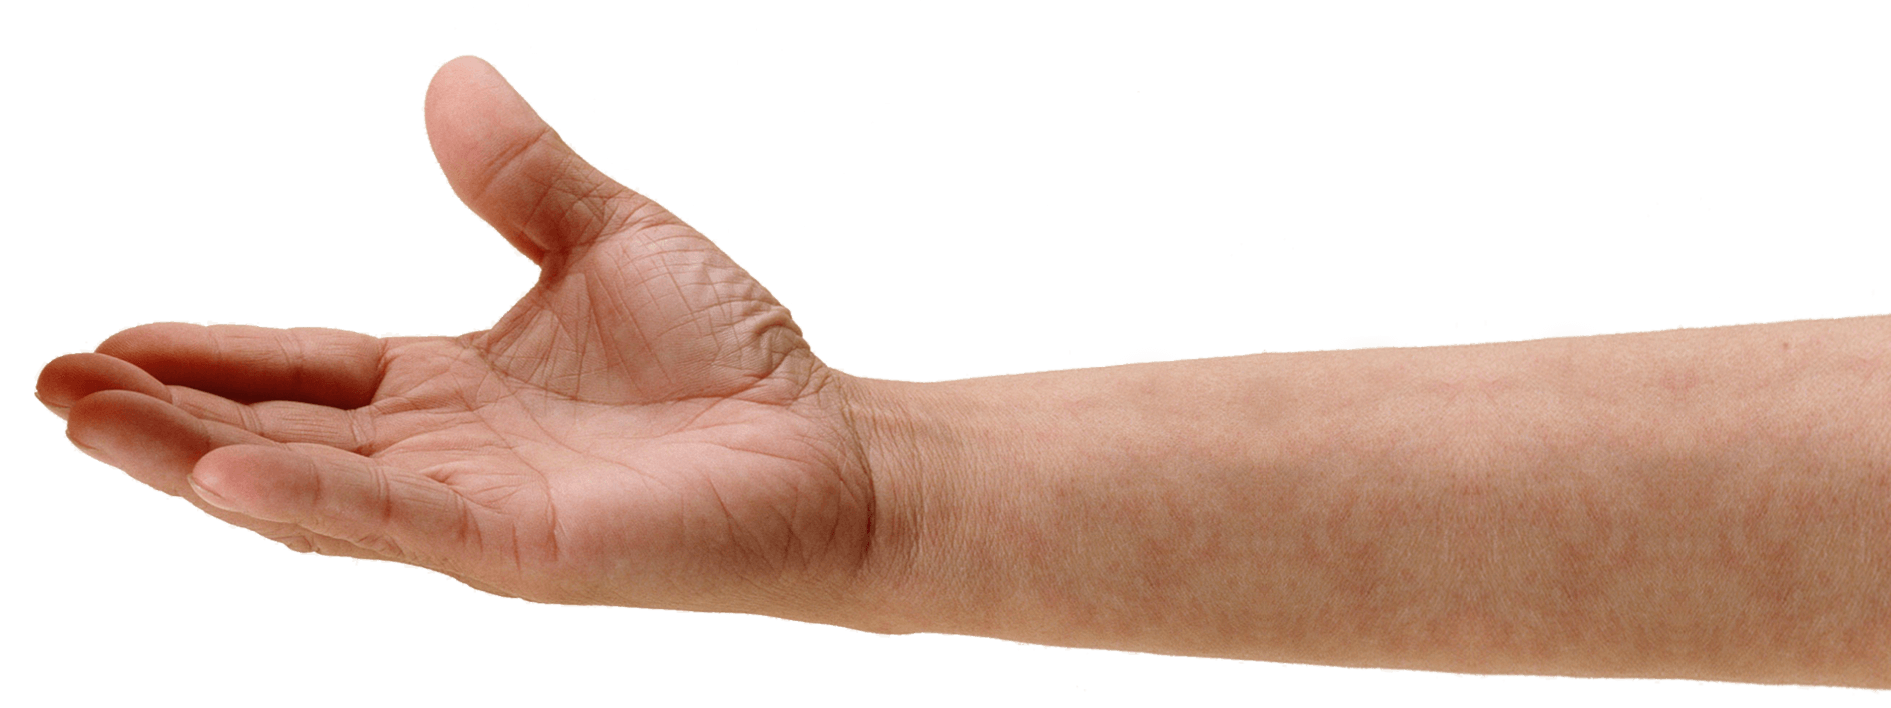 PNG HD Of Hands - 143263